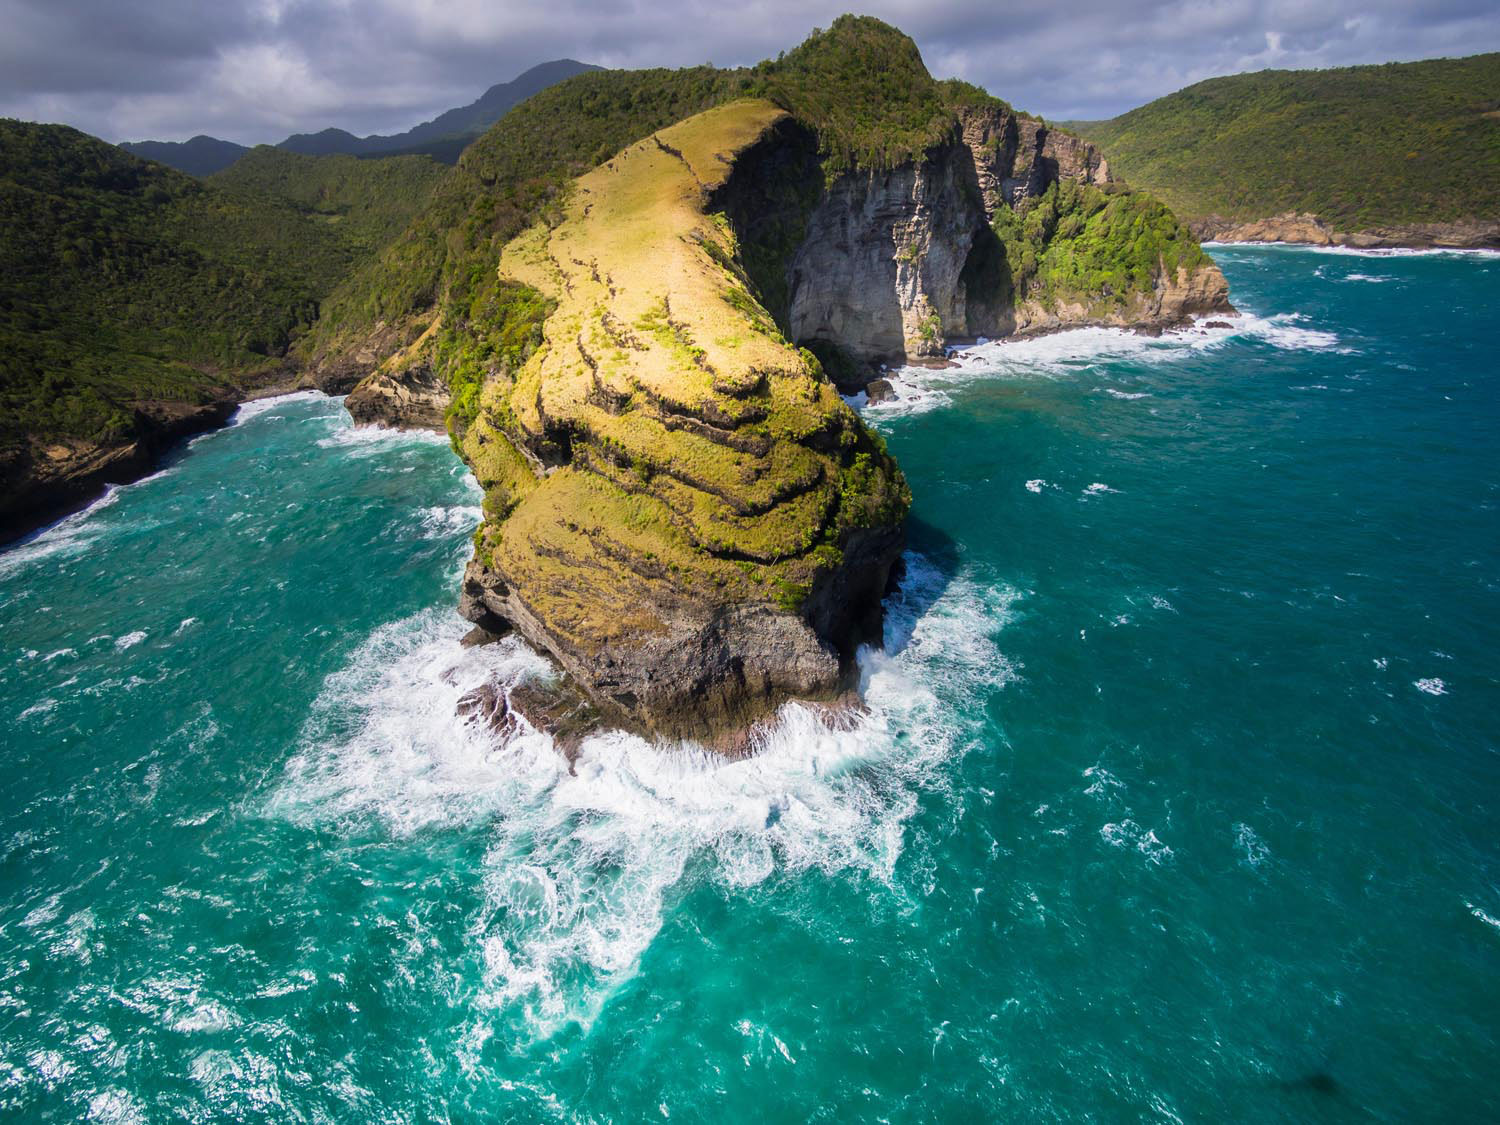 Chaloupe Bay and the wild majesty of St Lucia's Atlantic coast. Photo by Westend61 GmbH/Alamy Stock Photo